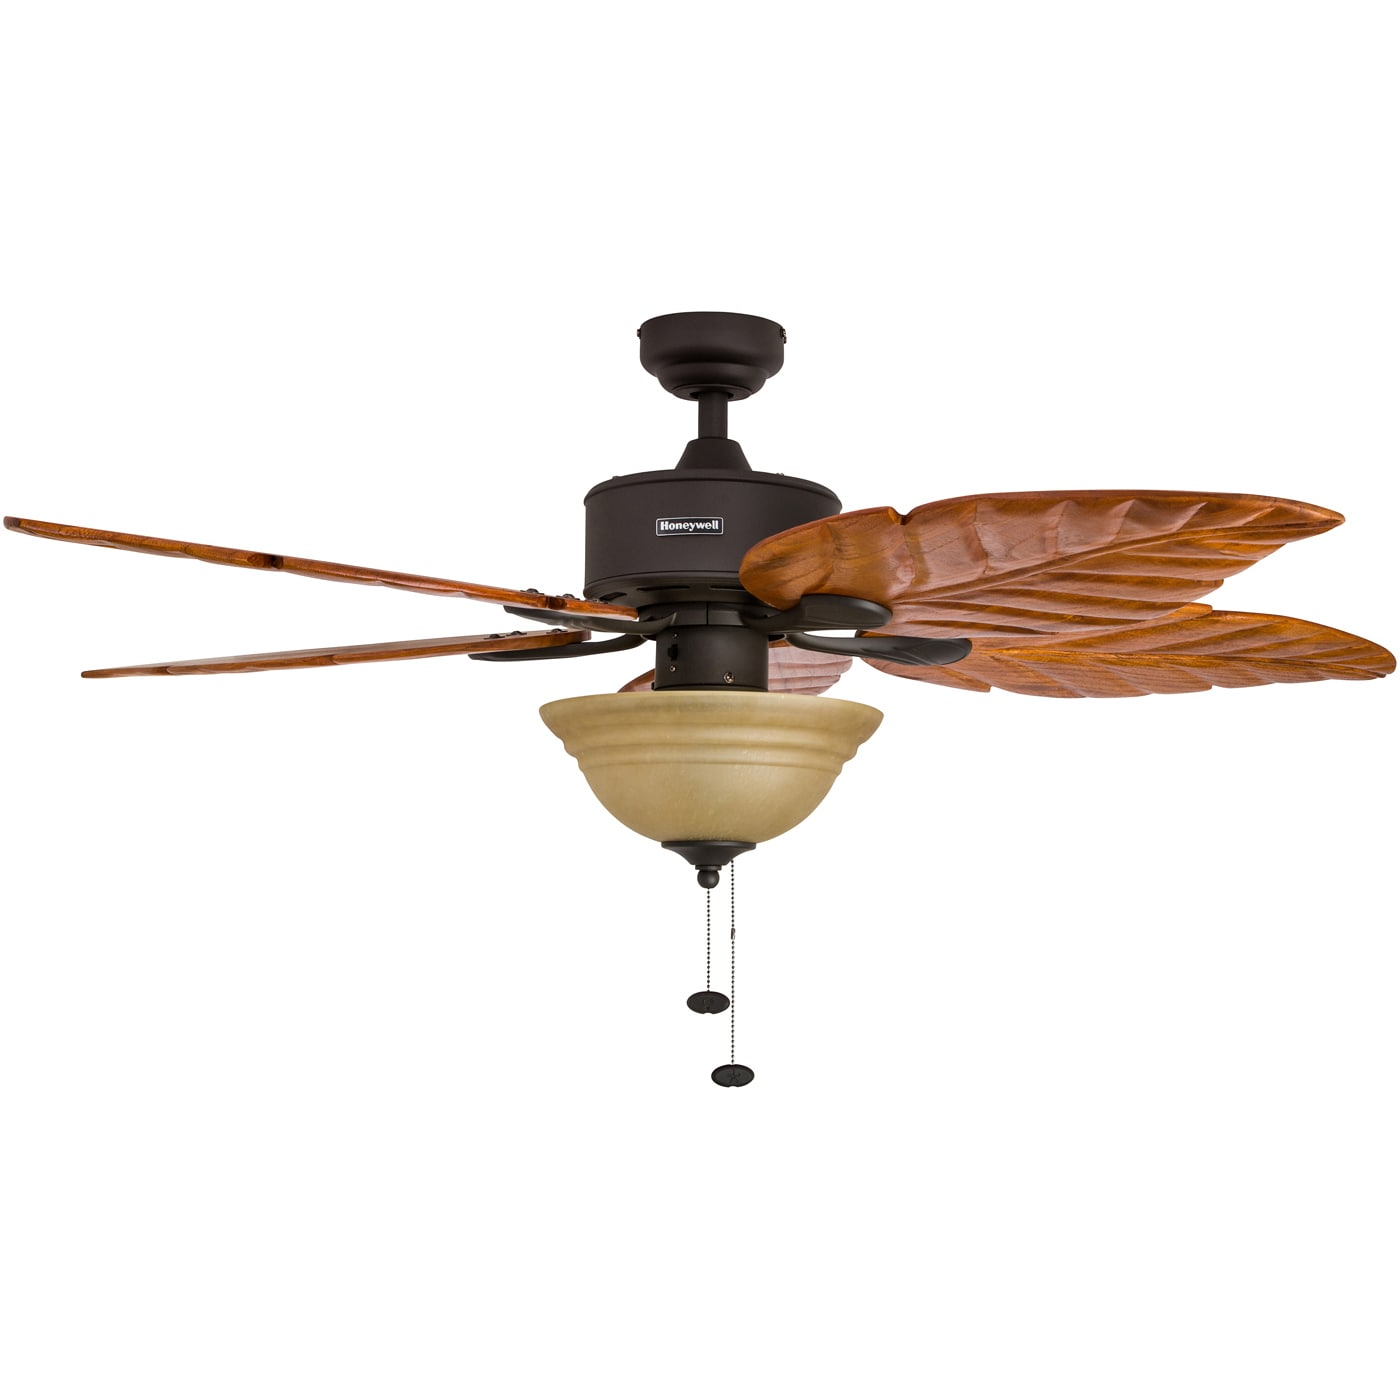 Honeywell Sabal Palm 52_inch Bronze Finish Ceiling Fan With Tuscan Bowl  Light And Carved Wood Blades   Free Shipping Today   Overstock   22393890